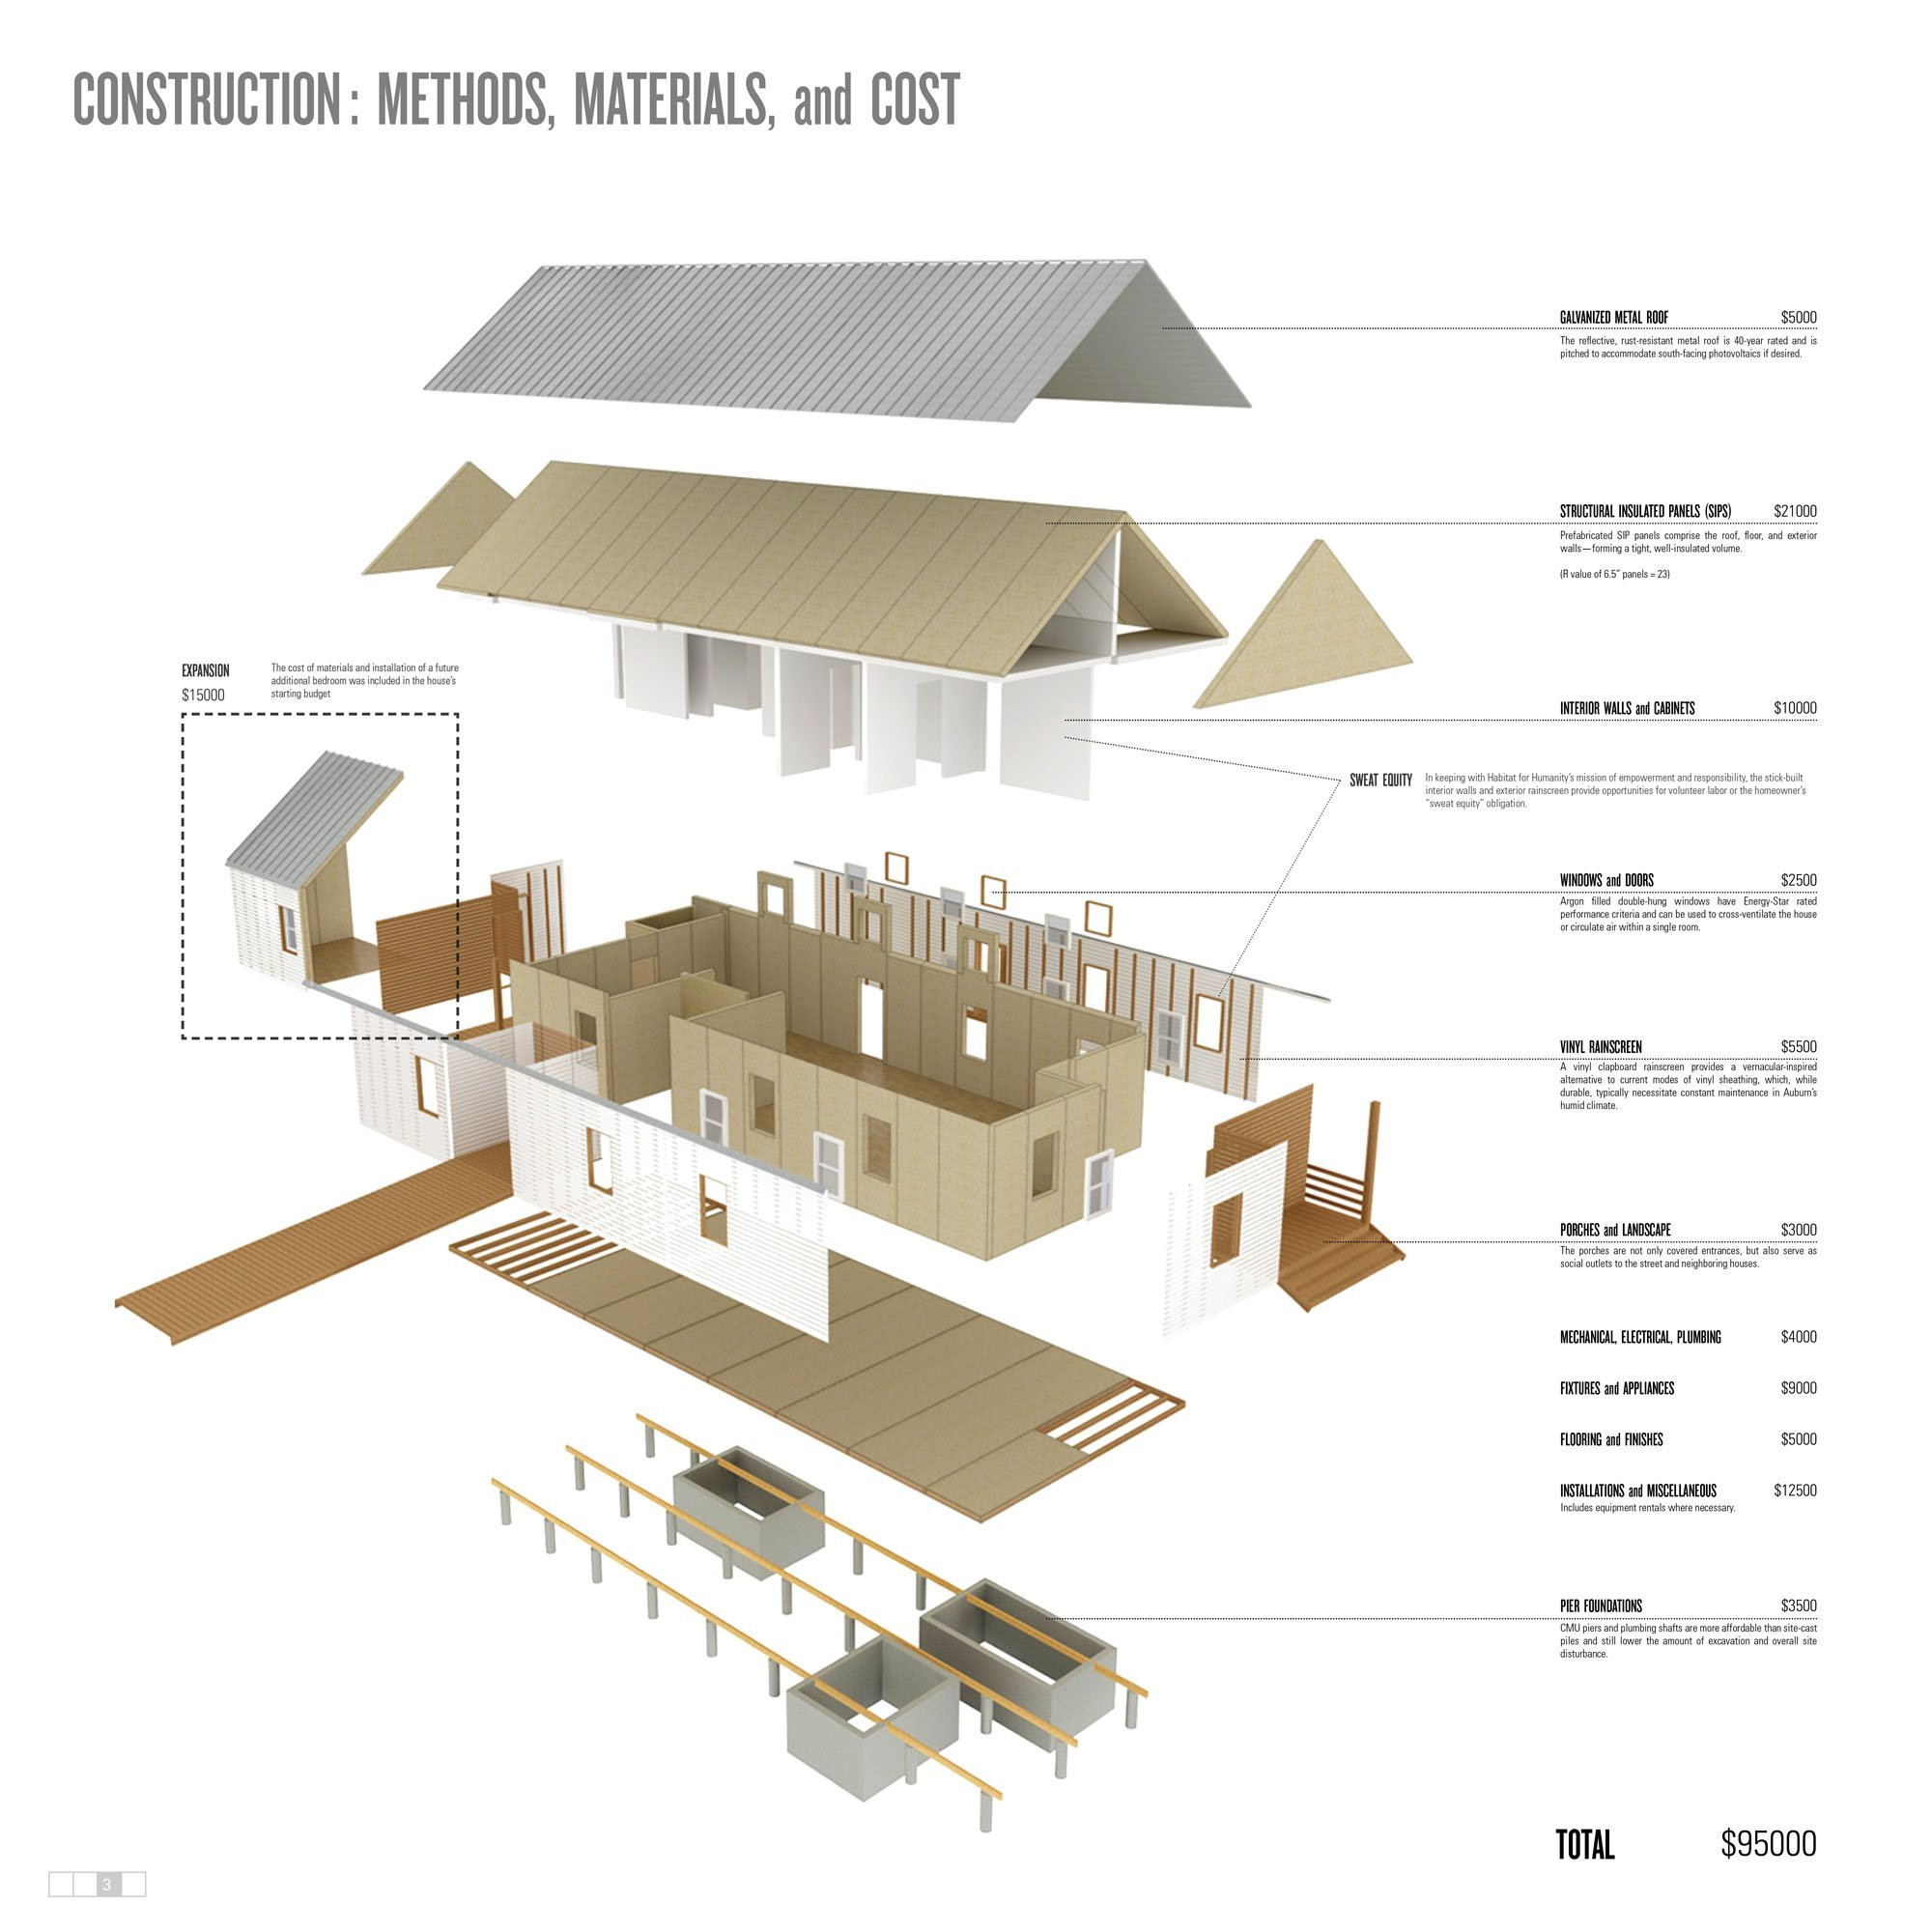 Home Design Ecological Ideas: Gallery Of Winners Of Habitat For Humanity's Sustainable